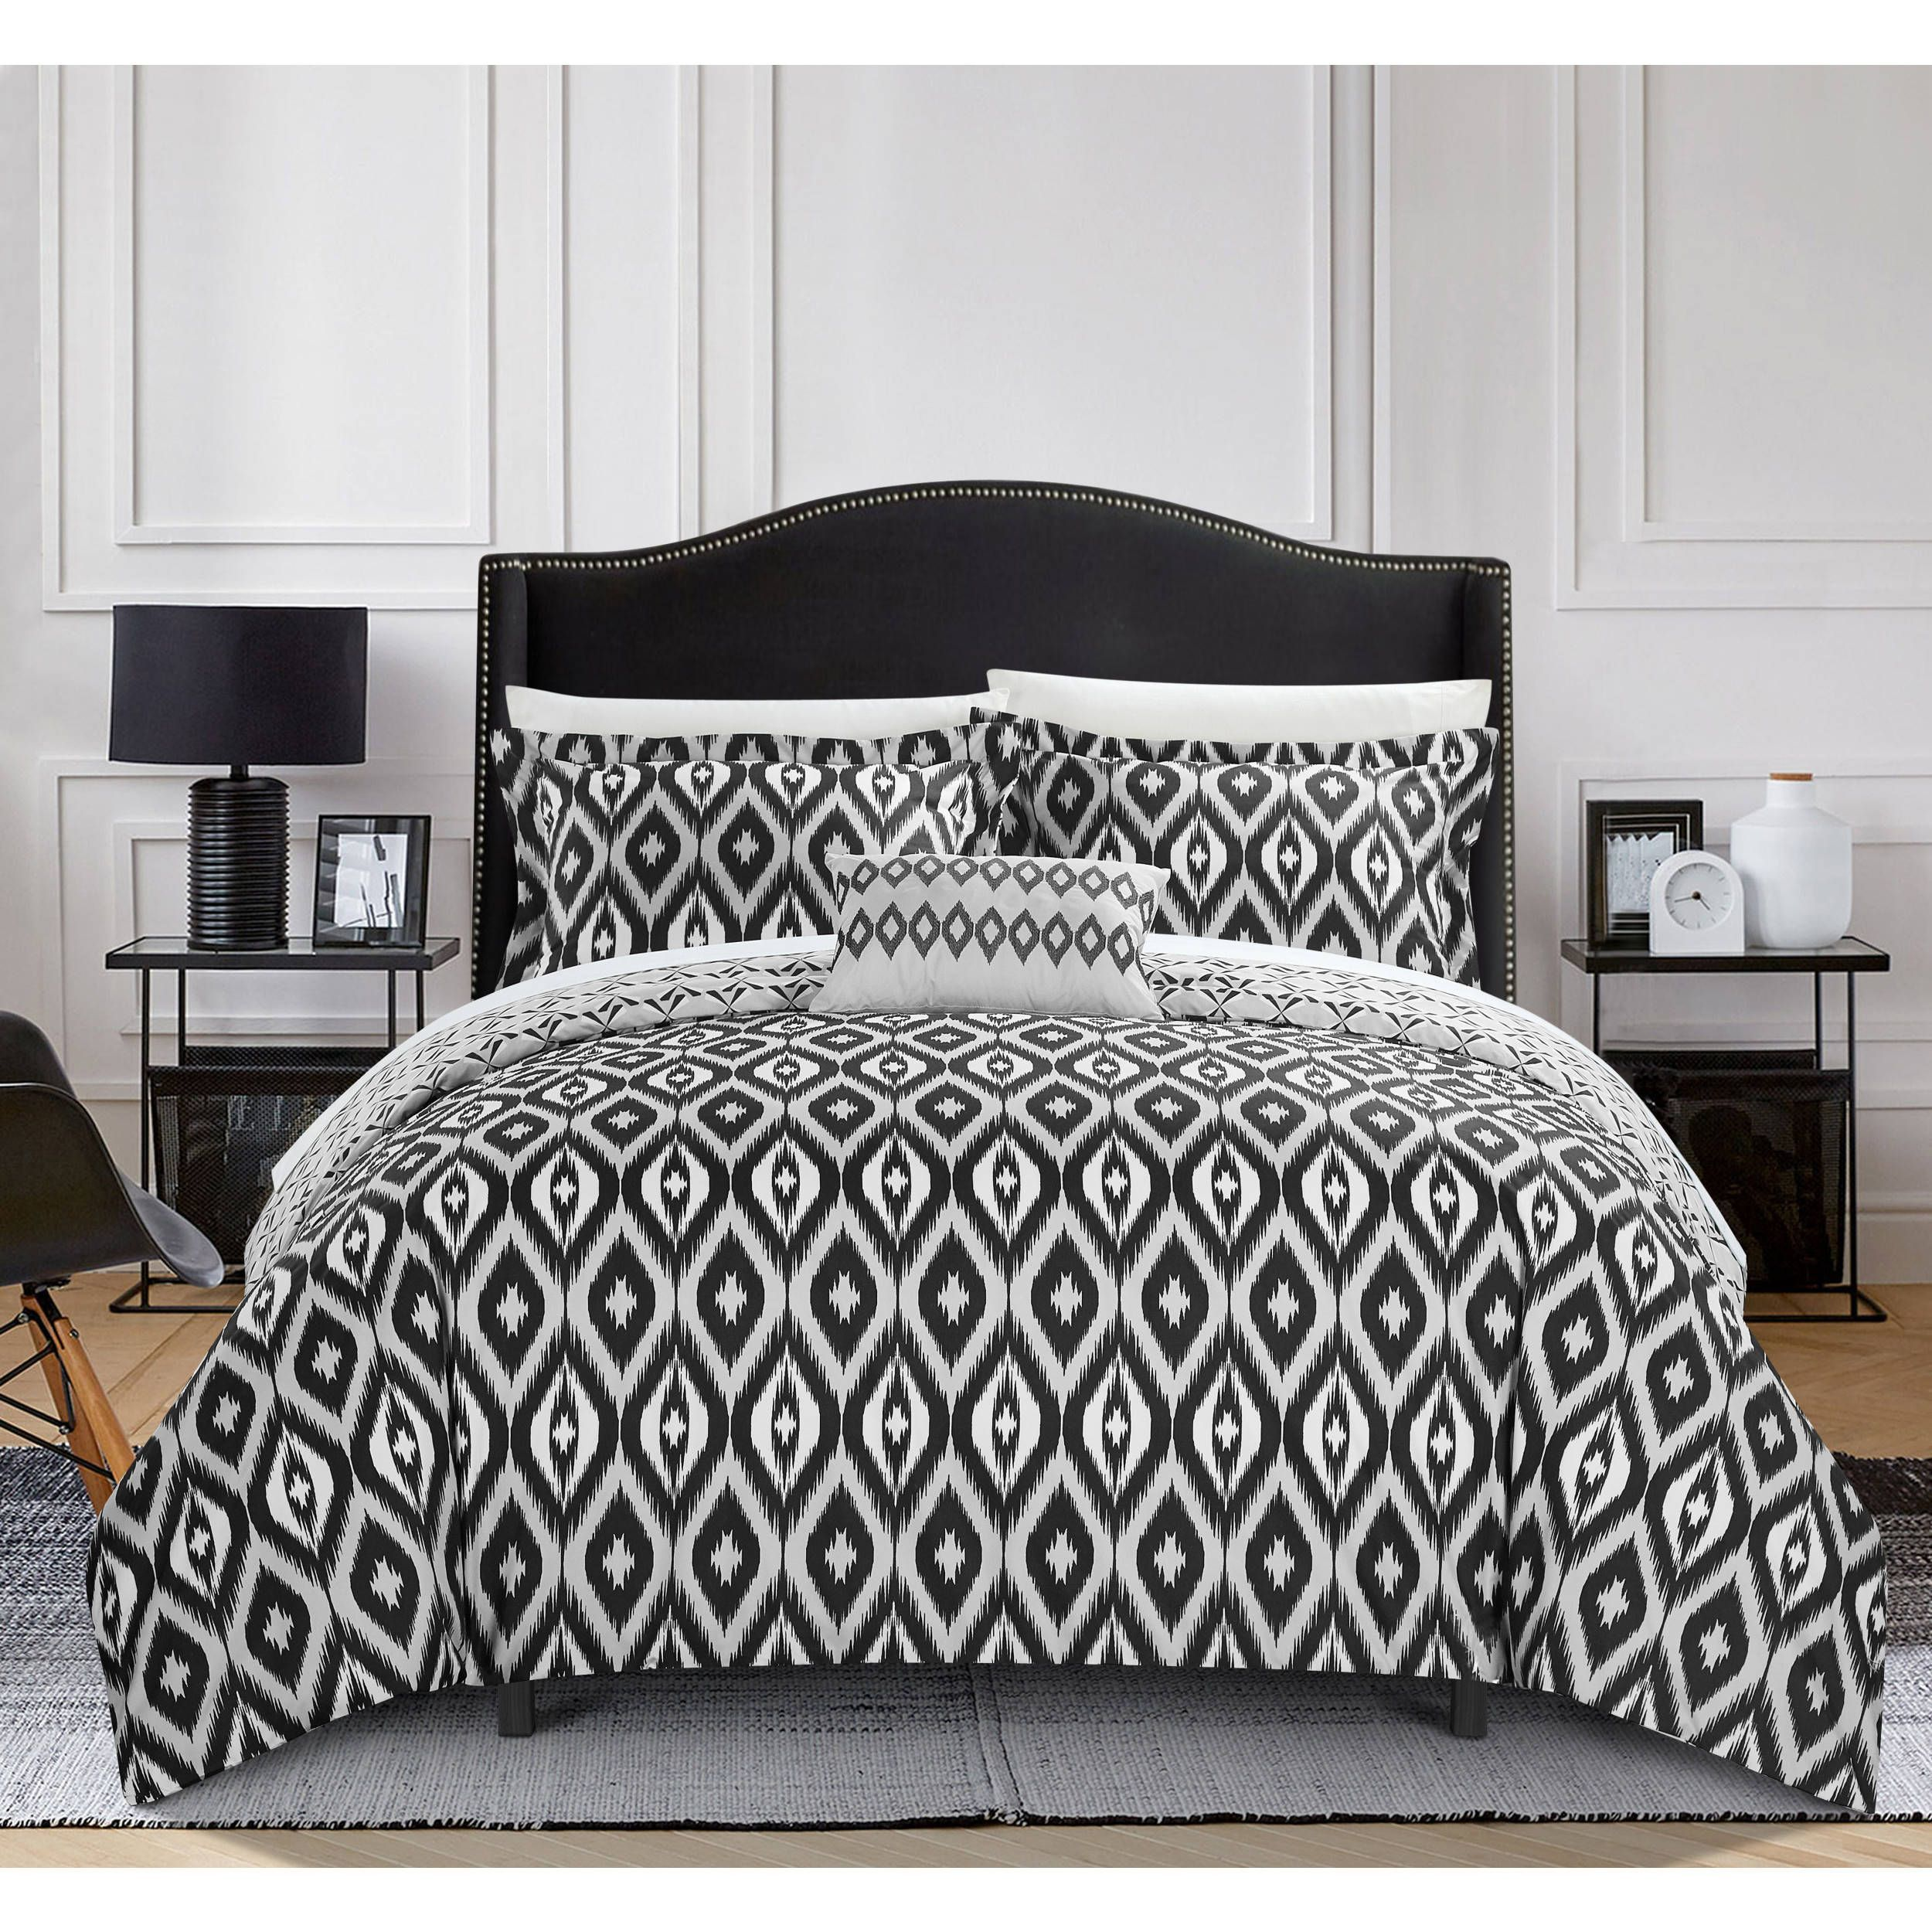 Chic Home 8Piece Reversible Black Ikat Duvet Cover and